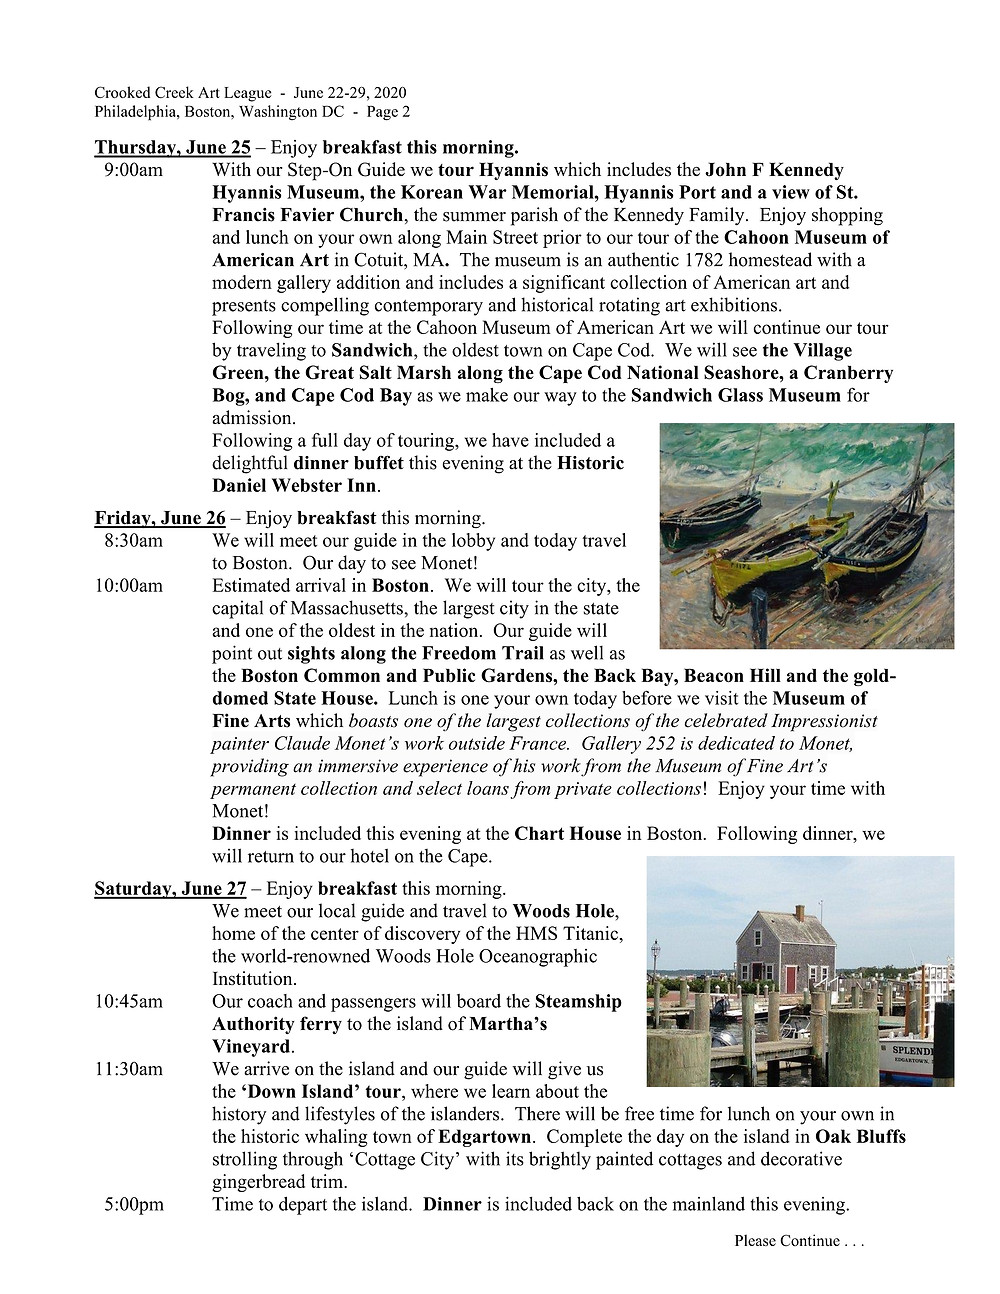 Monet and More Tour - Page 2